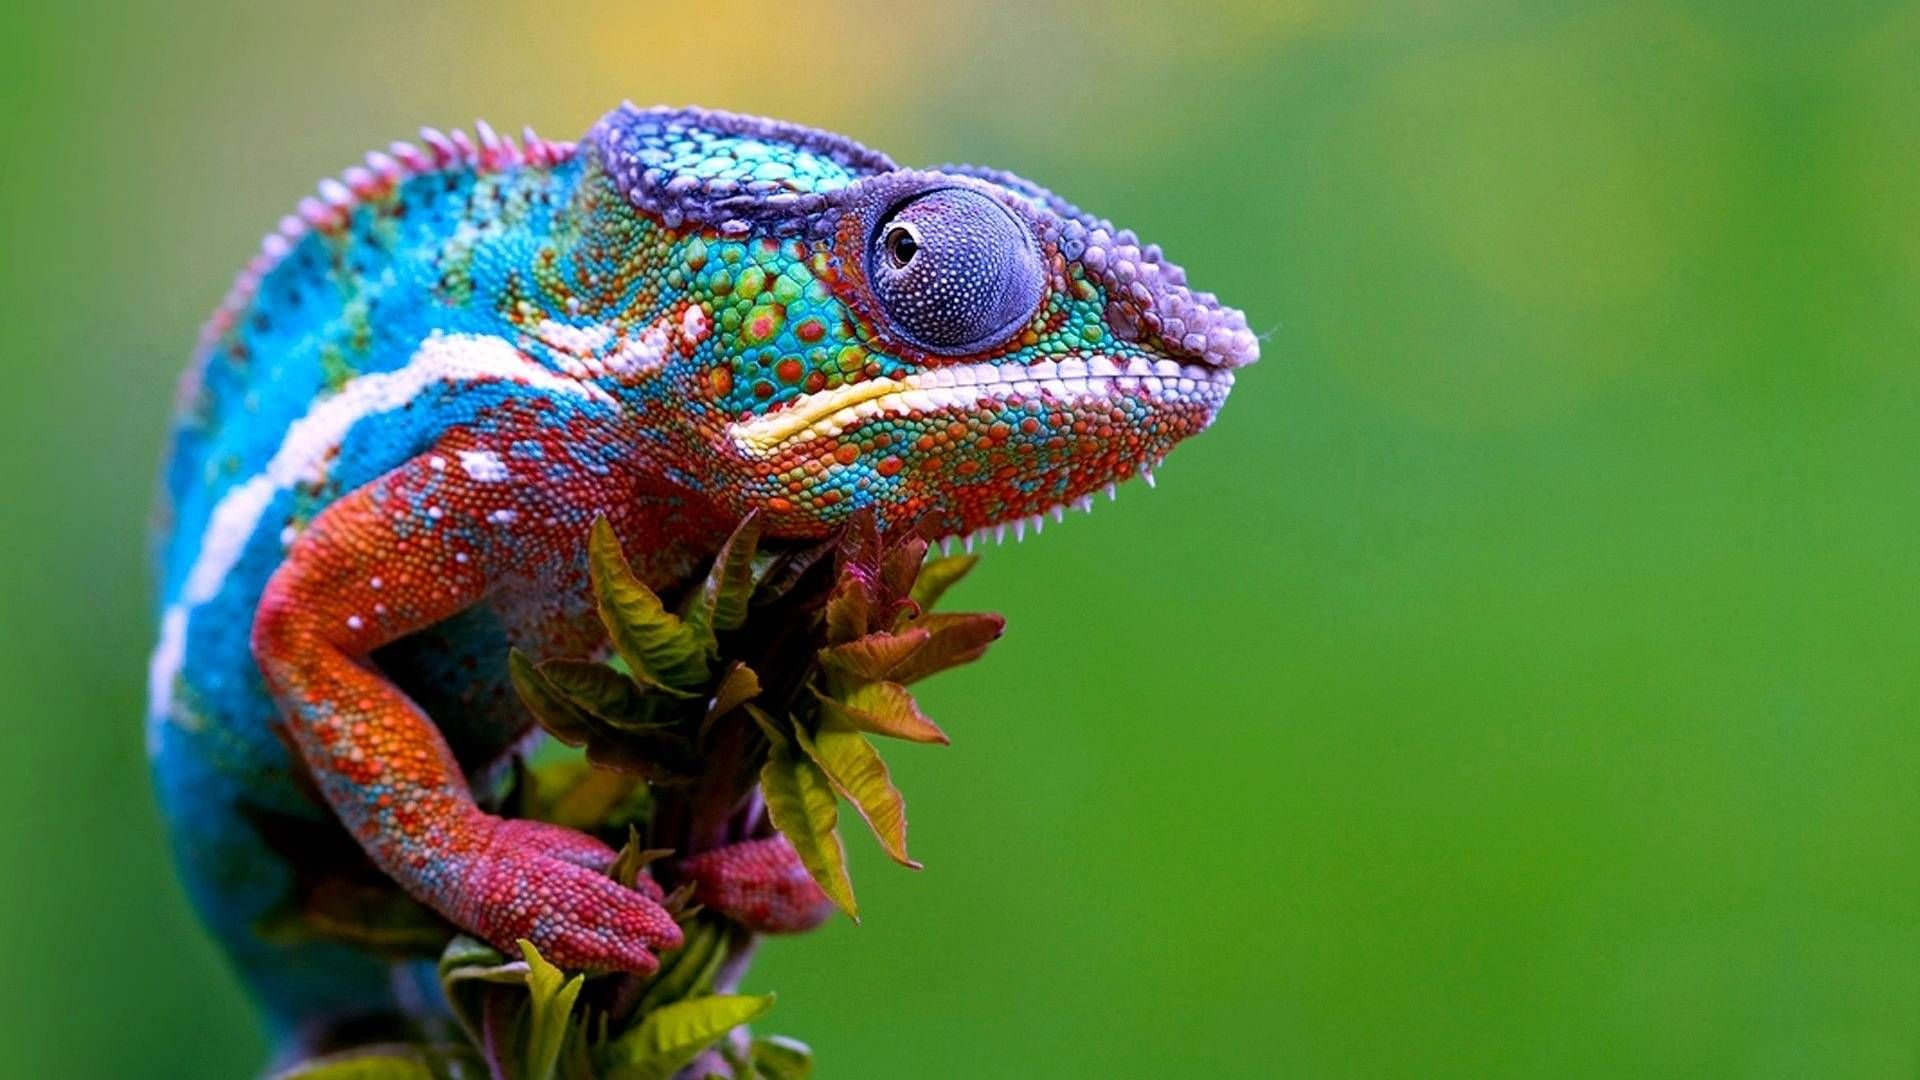 Colorful Colorful Male Chameleon Lizard Chameleons Family - Someone gave their chameleon a miniature sword to hold and now everyones joining in